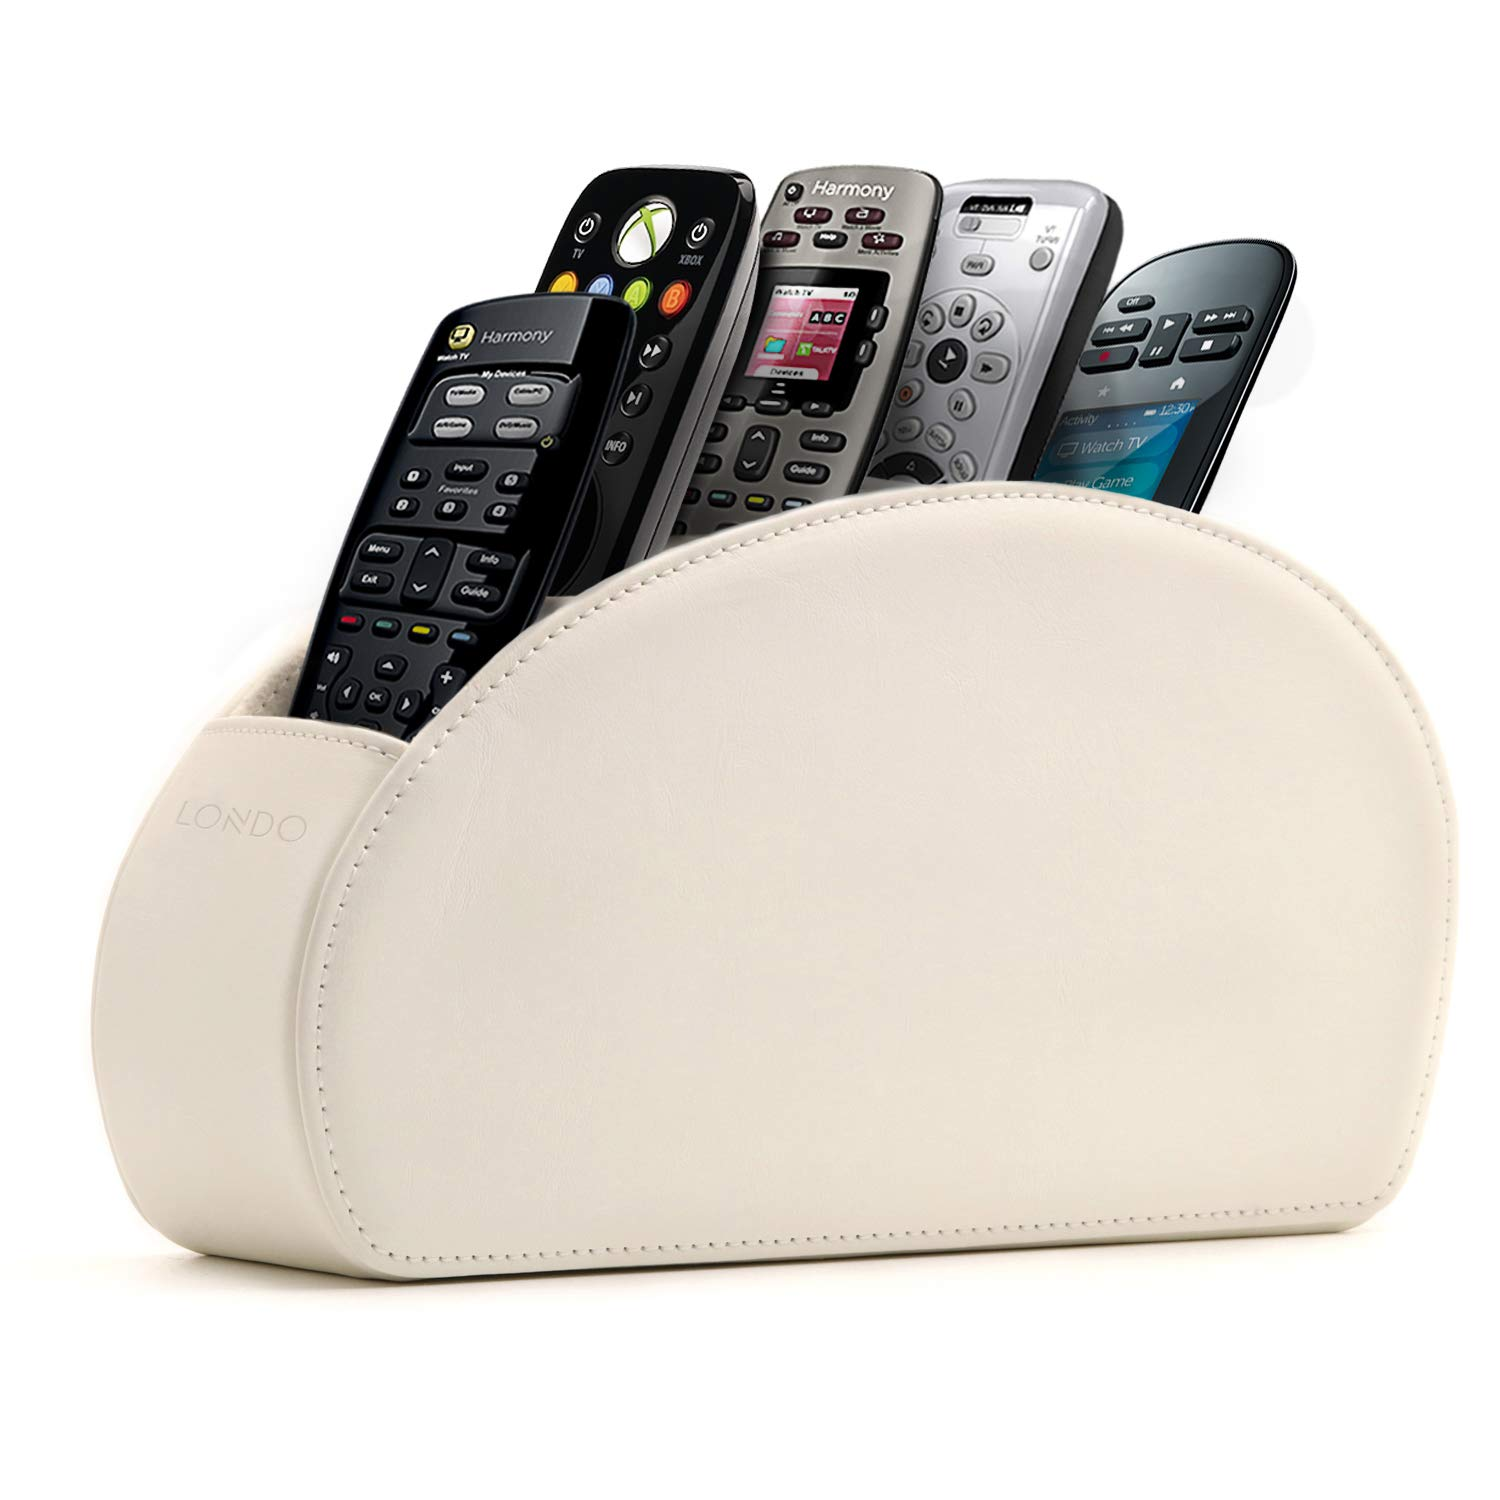 Londo - Leather Remote Control Holder Organizer with Suede Lining for DVD Blu-ray TV Roku or Apple TV Remotes (Leather, White)